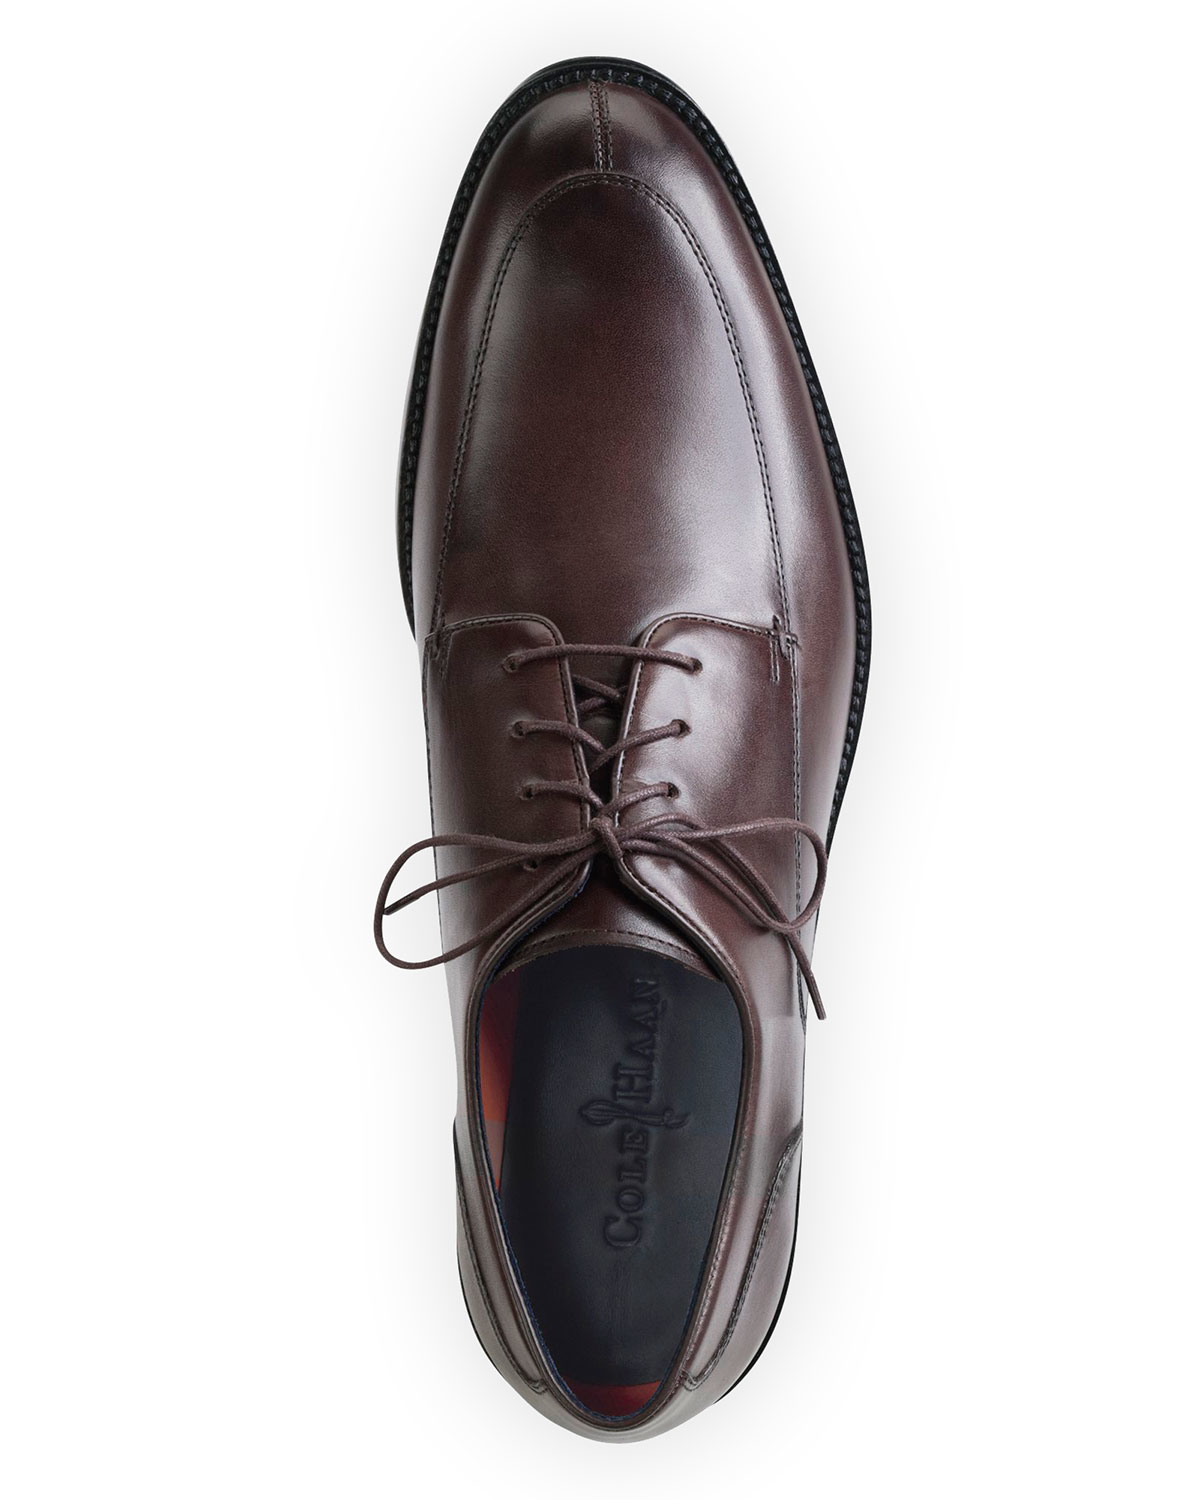 7d9b707519 Gallery. Previously sold at: Neiman Marcus · Men's Cole Haan Oxfords